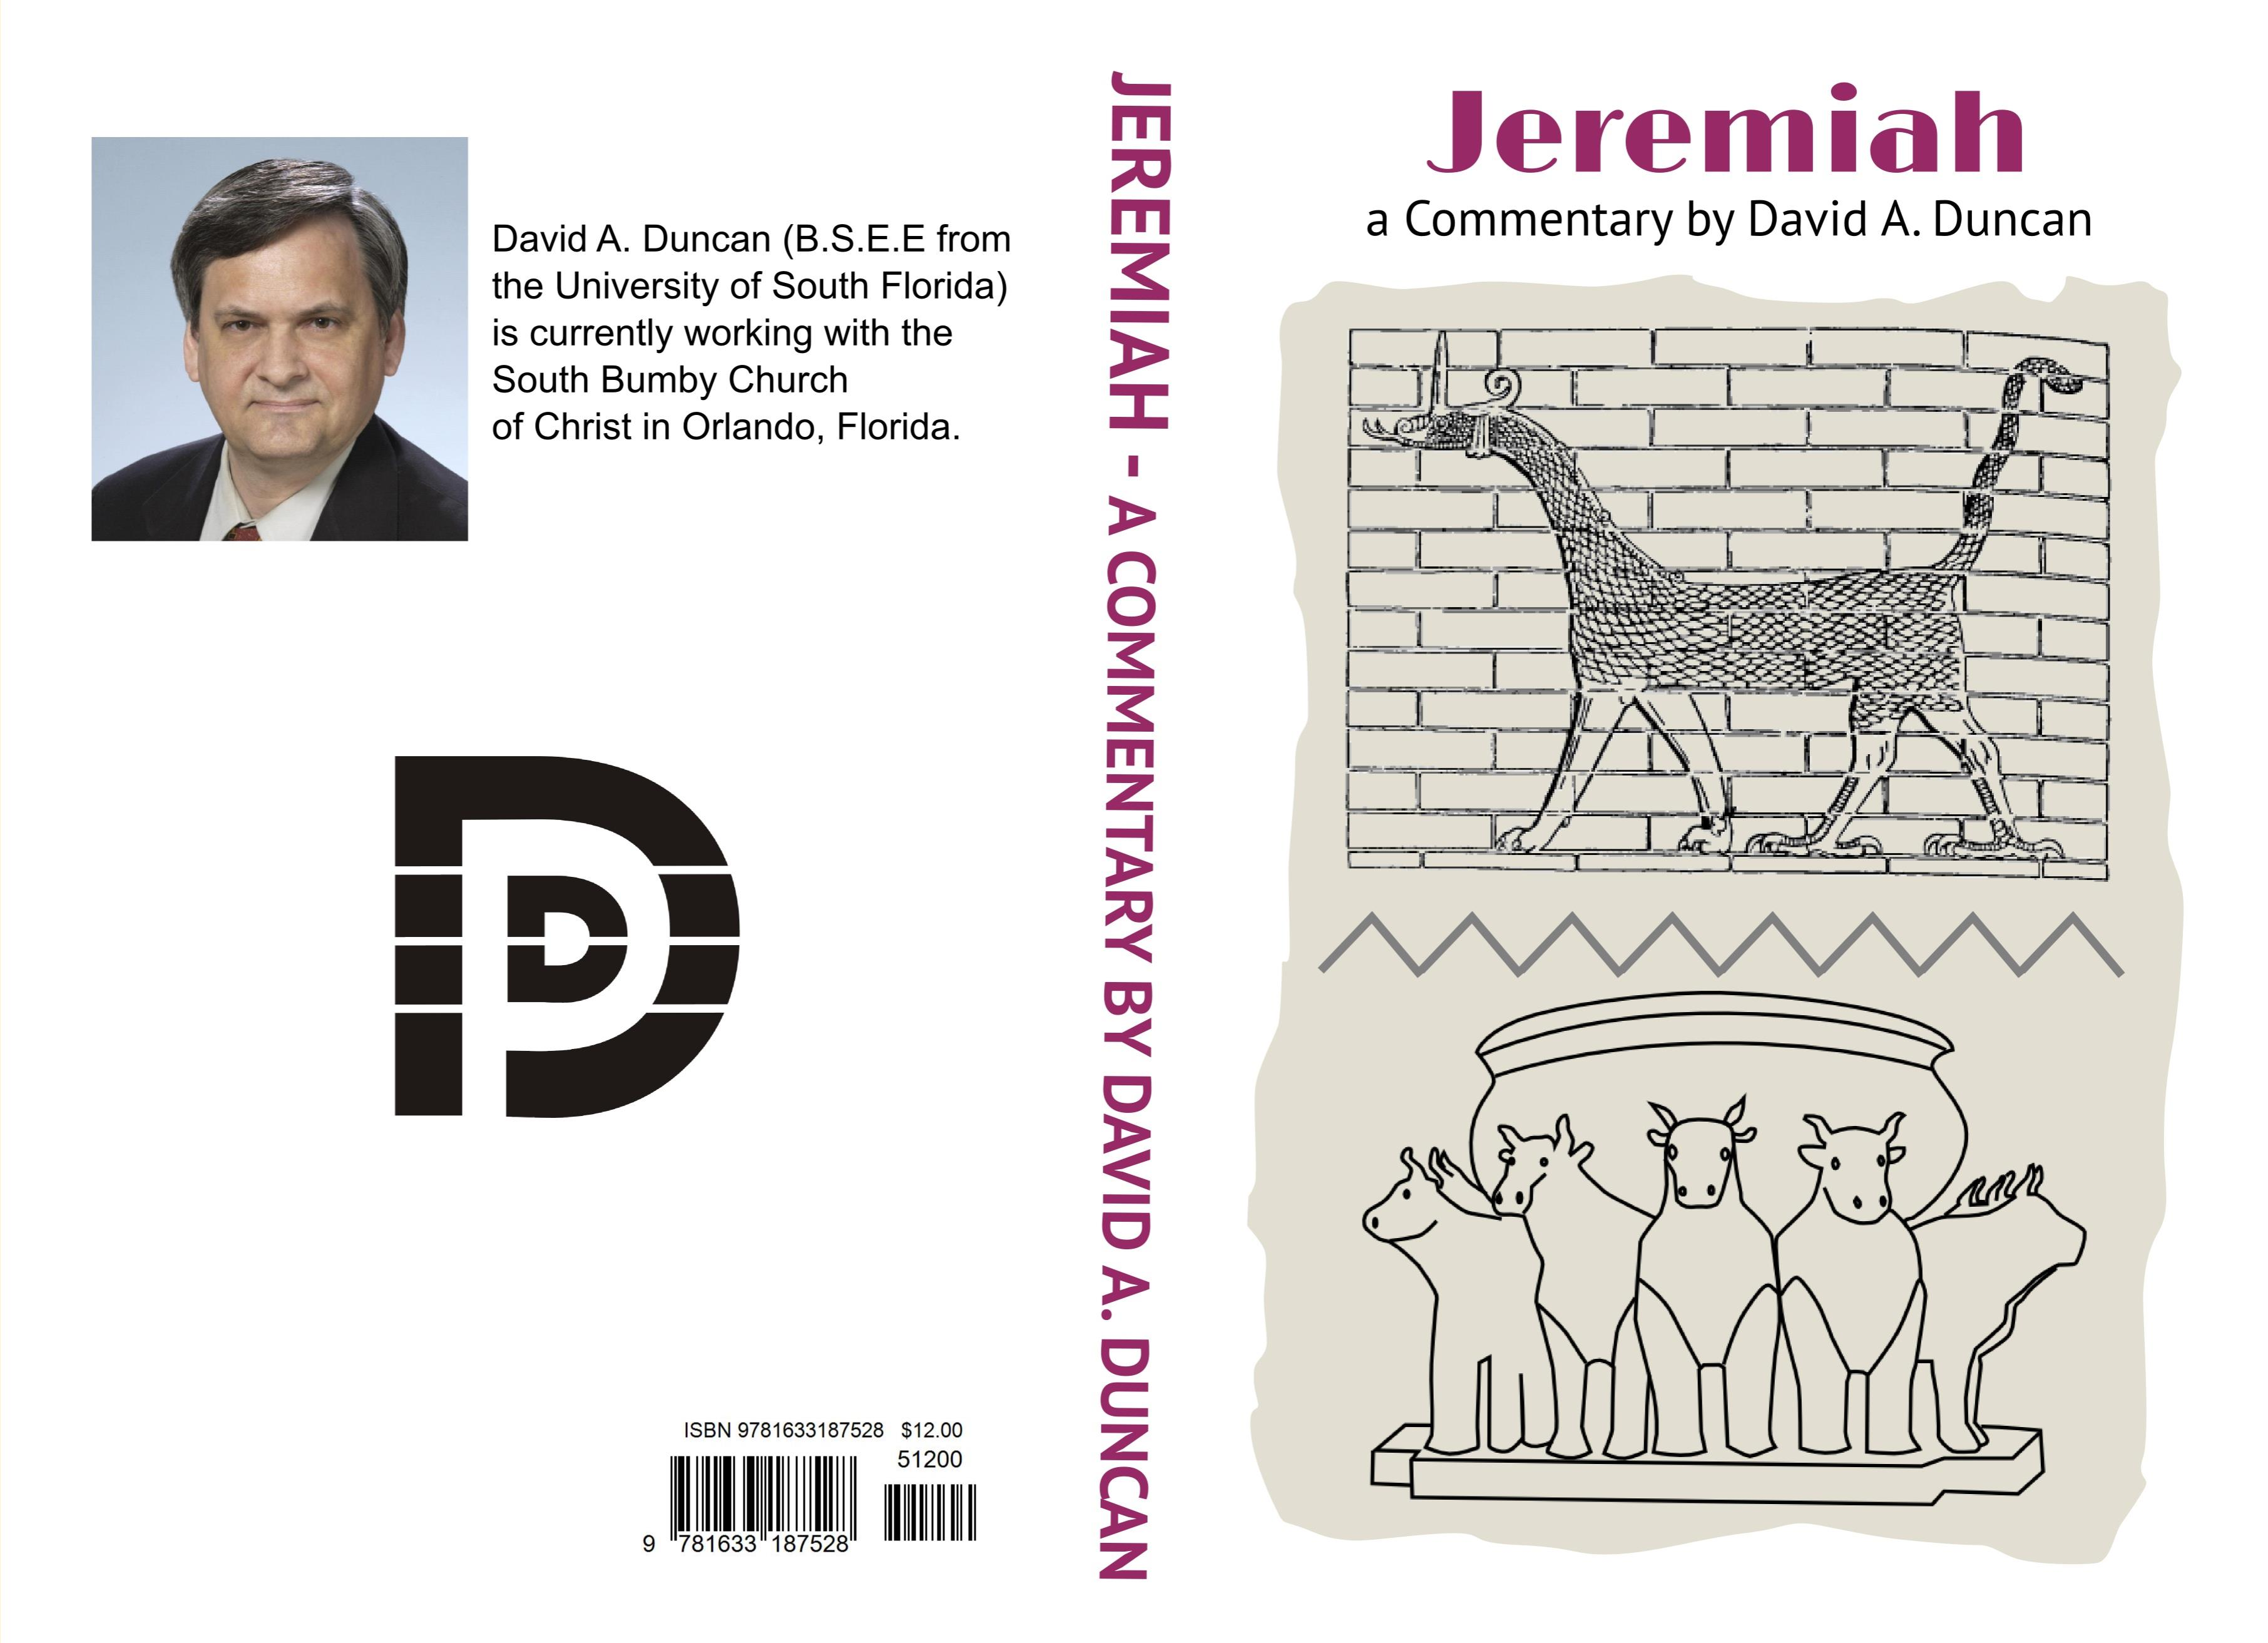 Jeremiah - A Commentary by David A. Duncan cover image